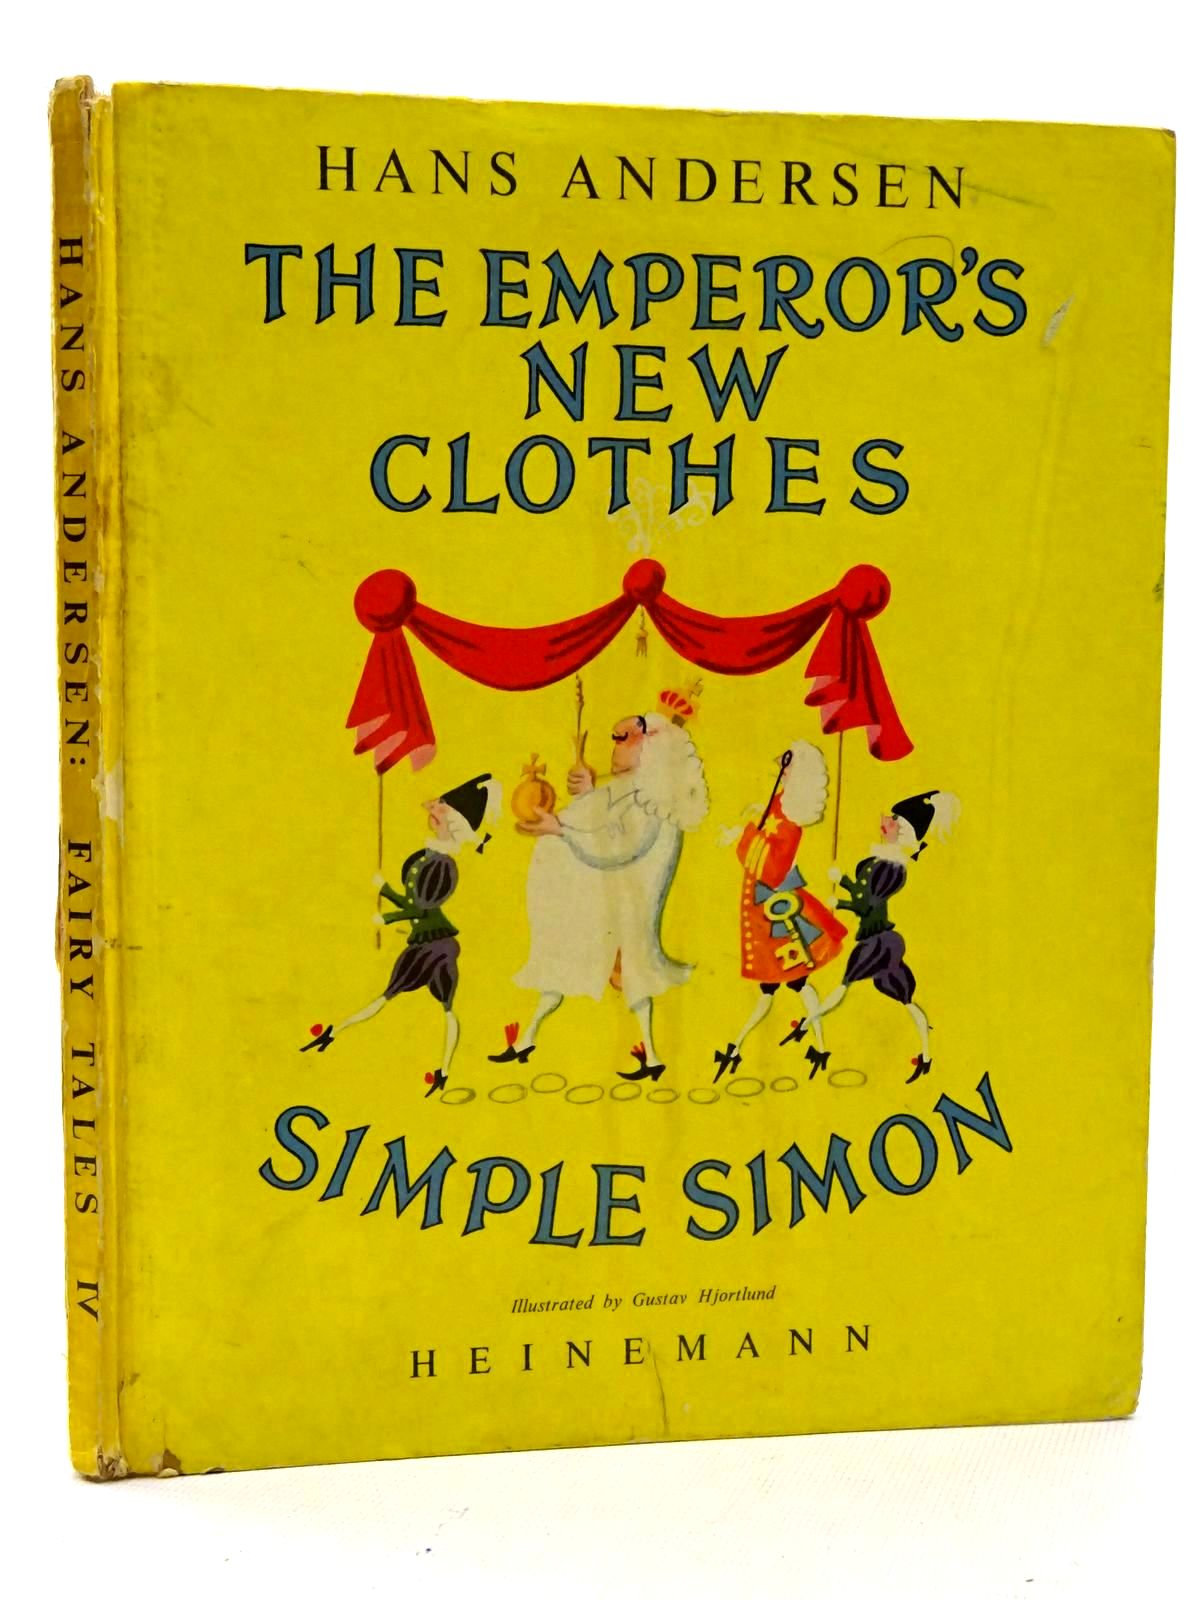 Photo of THE EMPEROR'S NEW CLOTHES - SIMPLE SIMON written by Andersen, Hans Christian illustrated by Hjortlund, Gustav published by William Heinemann Ltd. (STOCK CODE: 2125845)  for sale by Stella & Rose's Books